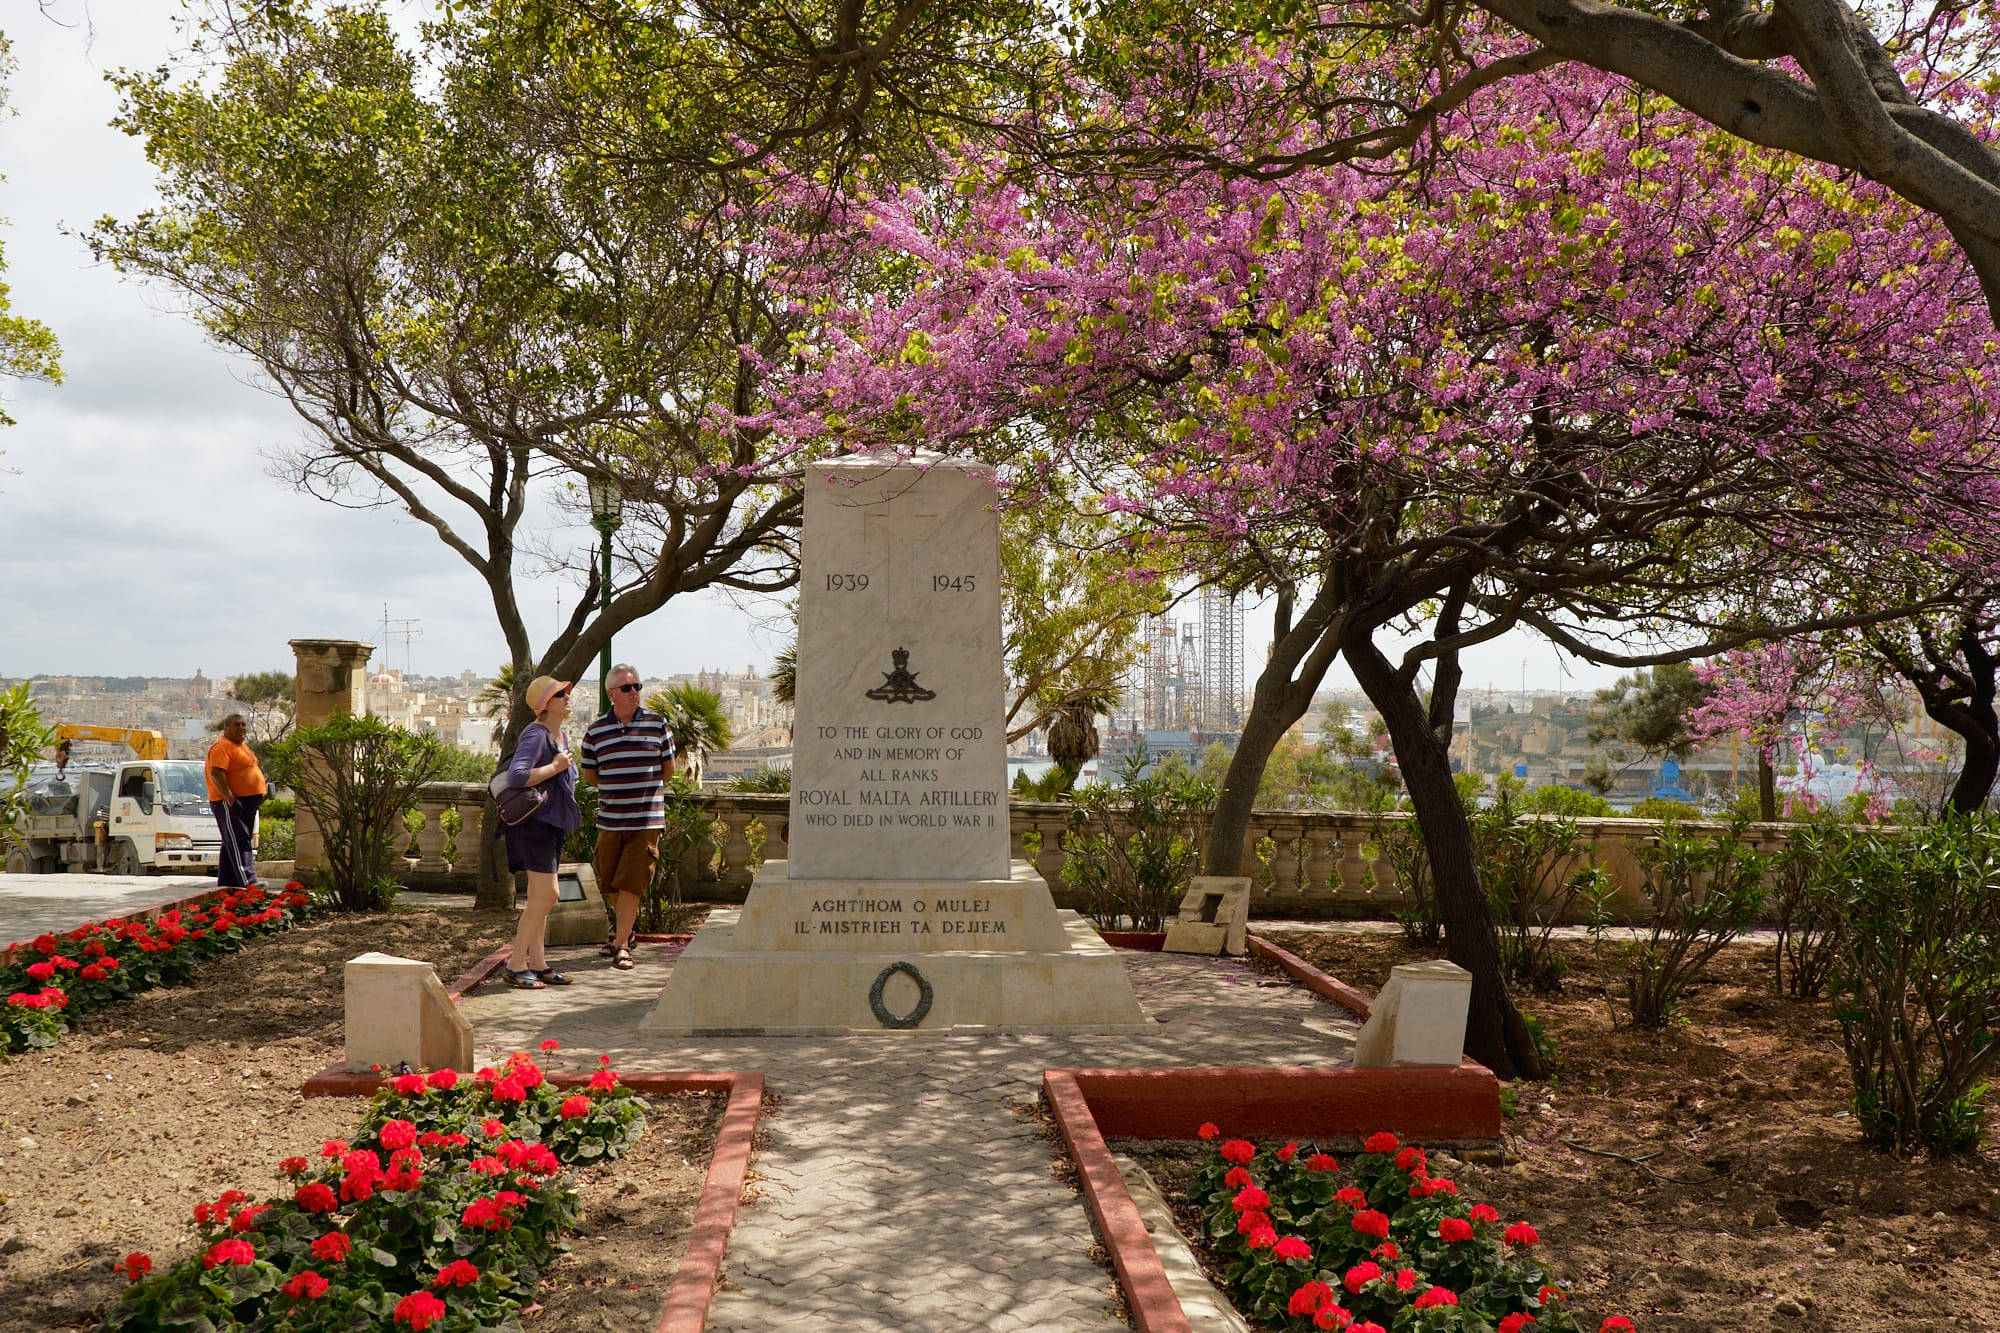 Royal Malta Artillery war memorial